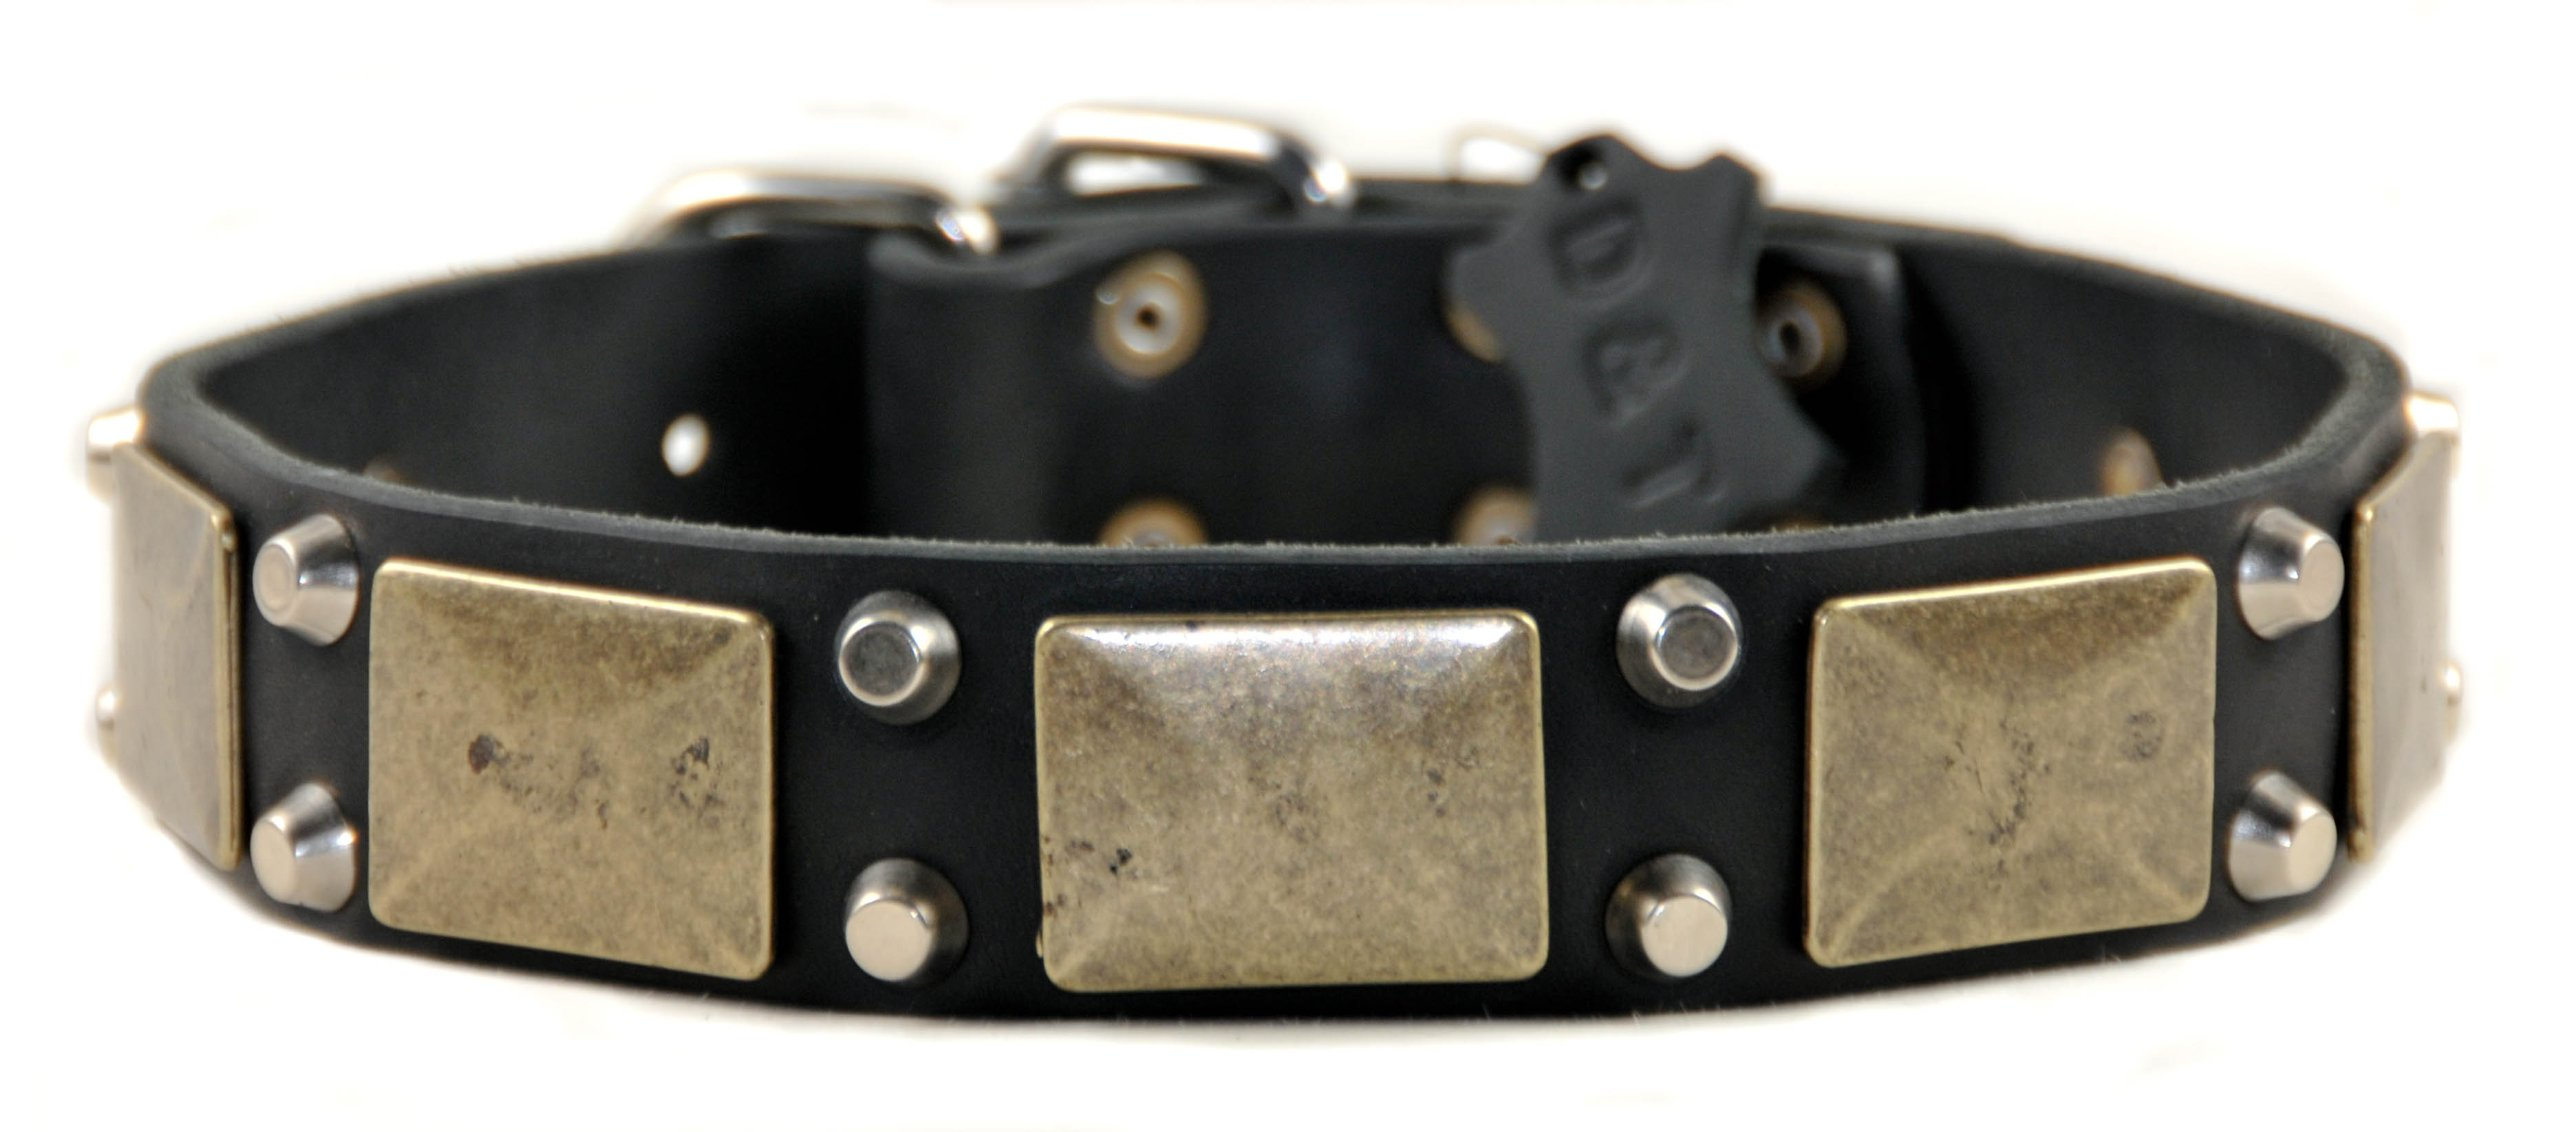 Dean and Tyler ''THE ANTIQUE'', Leather Dog Collar with Solid Brass Hardware - Black - Size 32-Inch by 1-1/2-Inch, Fits Neck 30-Inch to 34-Inch